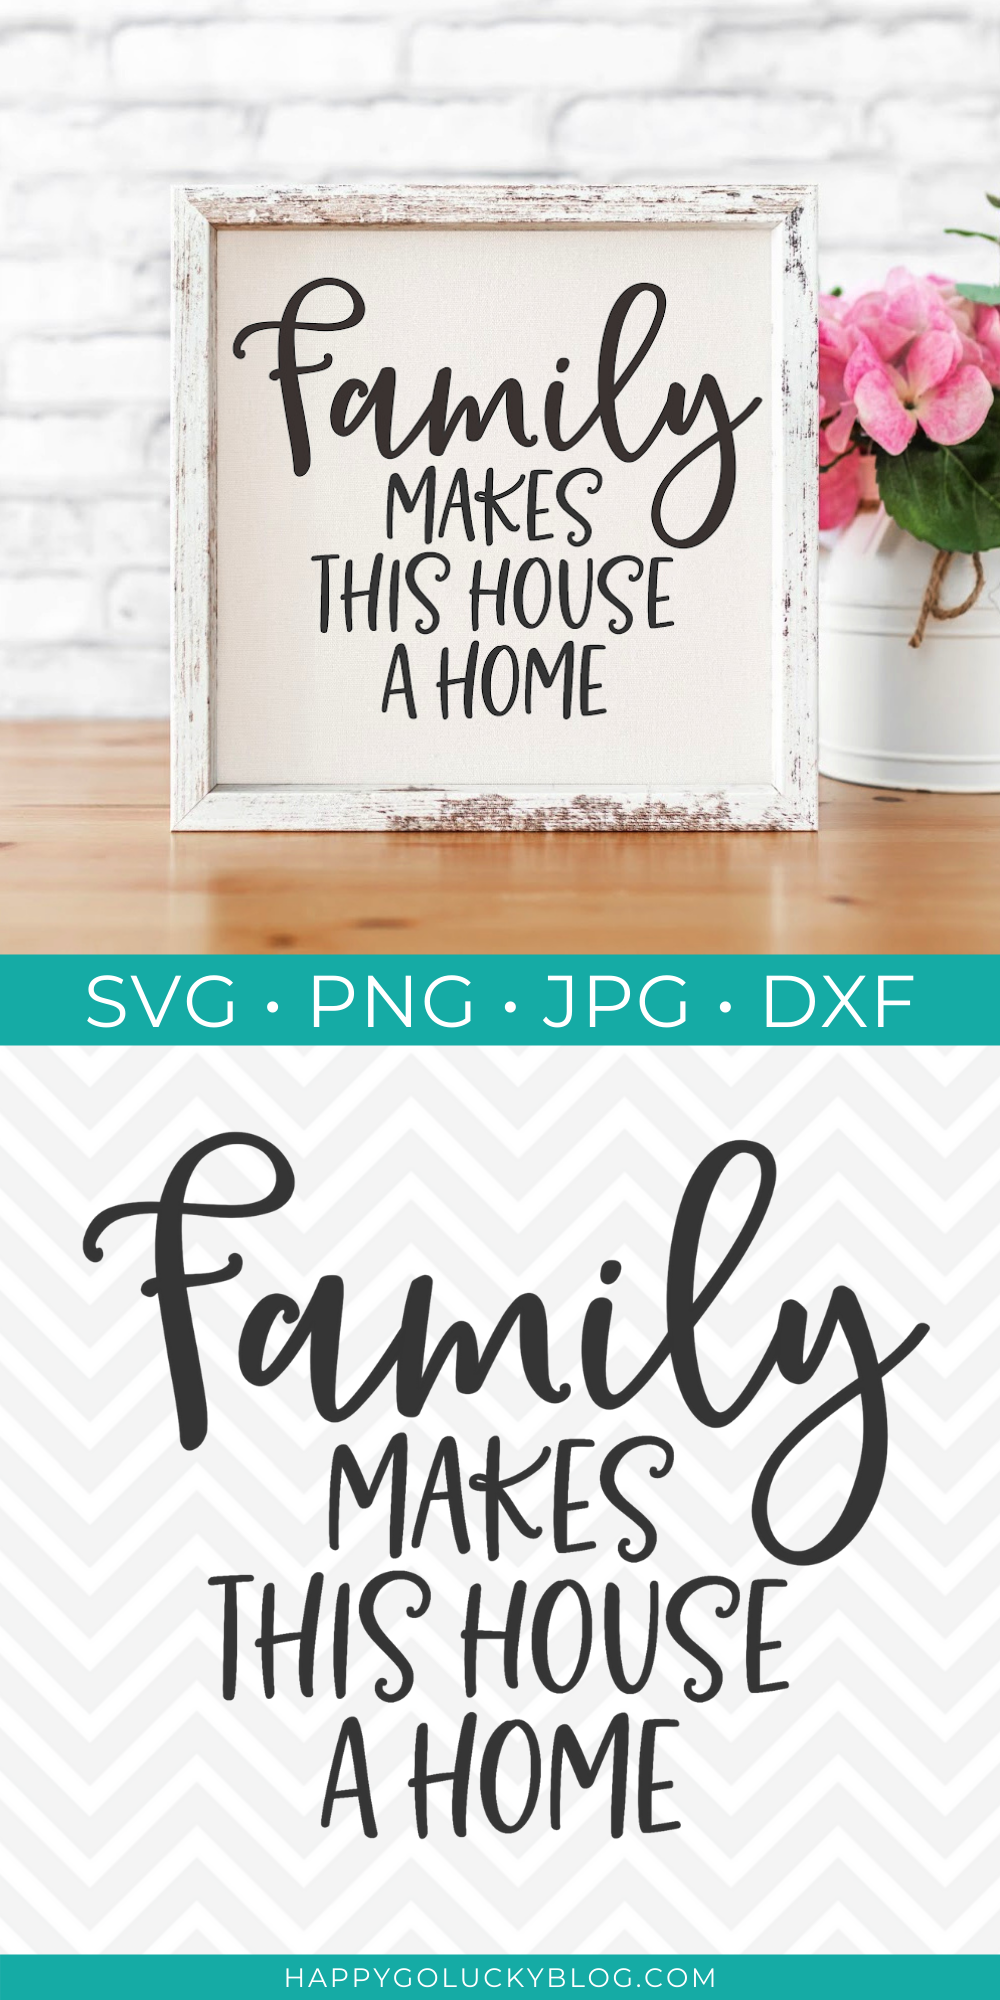 Free SVG Cut File - Family Makes This House a Home